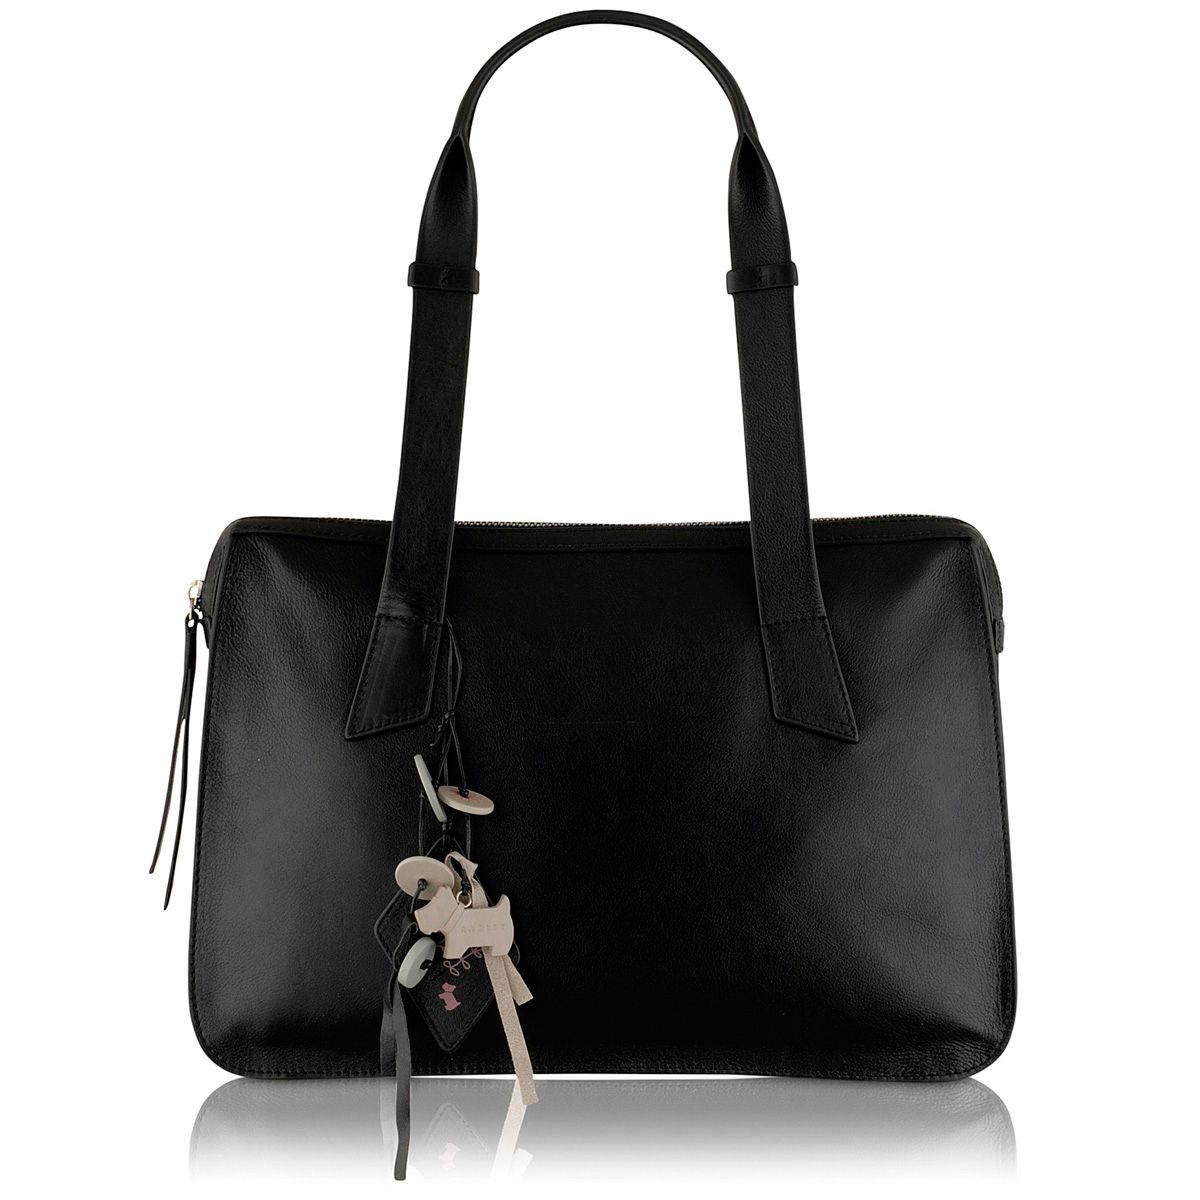 Maiden black medium leather shoulder bag